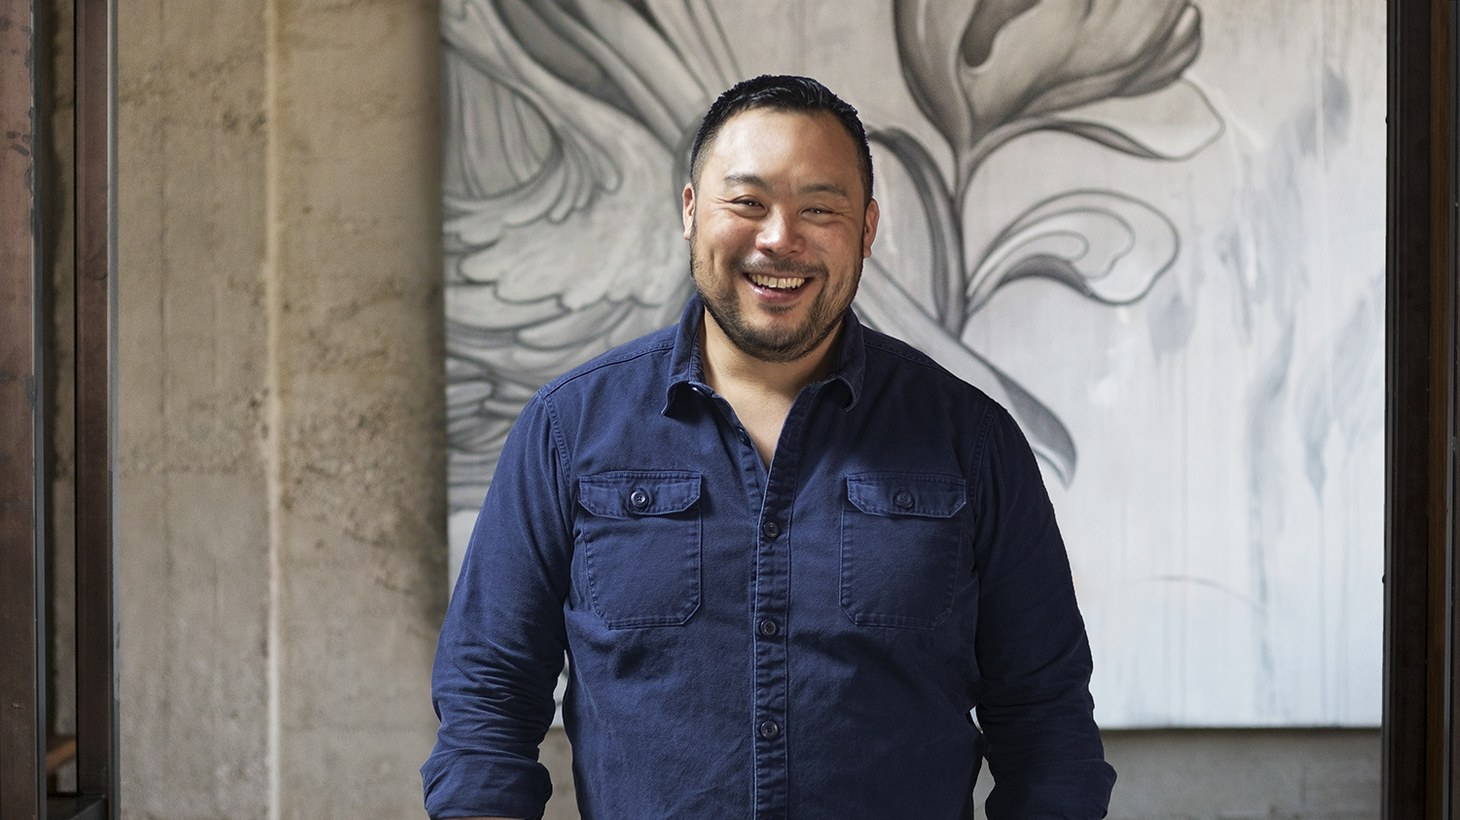 David Chang says his essential Thanksgiving dish has changed over the years. He'll be celebrating Thanksgiving in Los Angeles, where he is considering skipping cooking to order fried chicken or a feast from one of LA's independent restaurants.